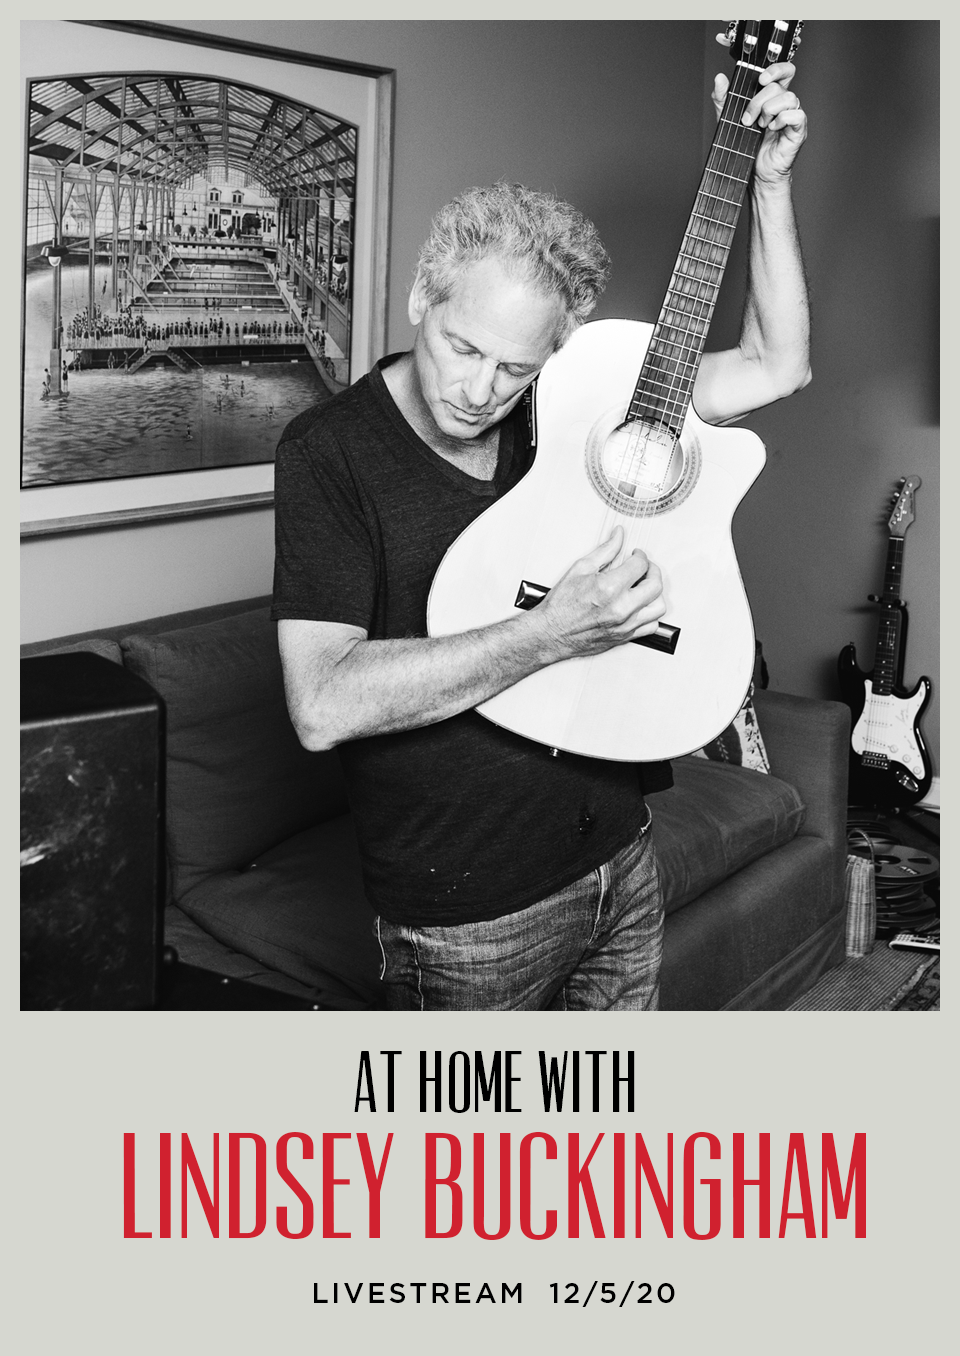 Lindsey Buckingham Intimate Performance Dec 5th flyer